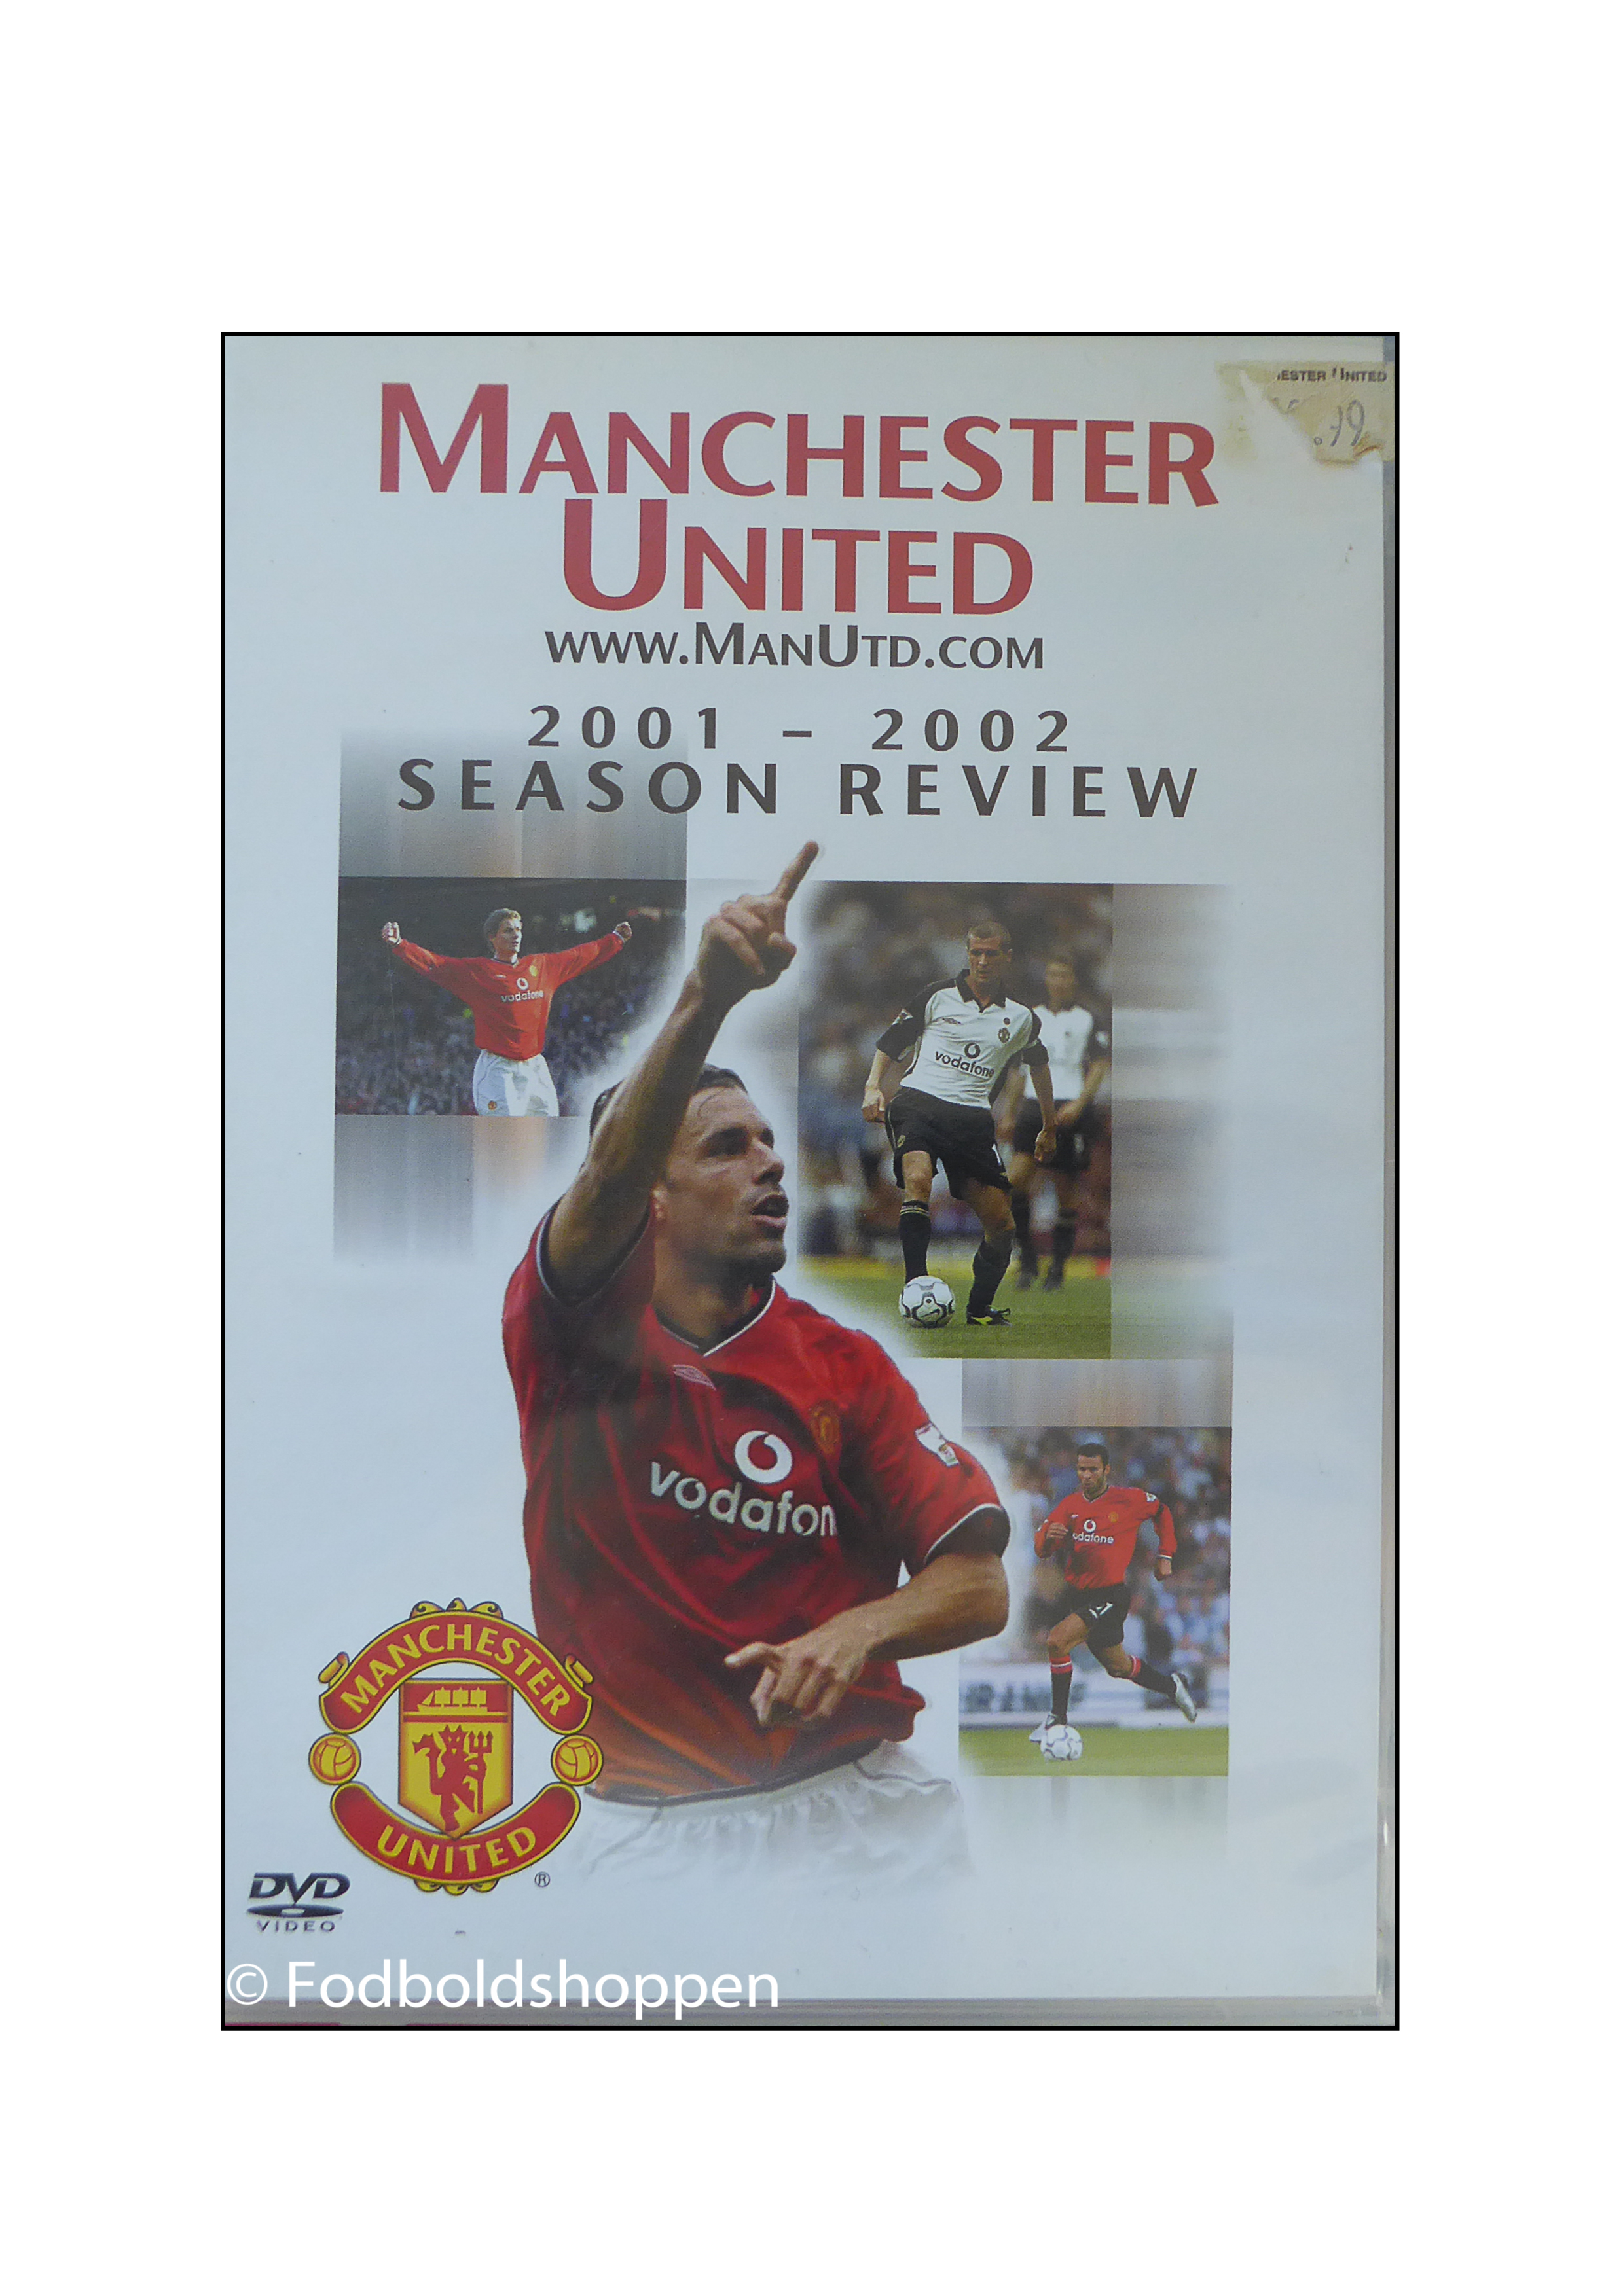 DVD -Manchester United Season Review 2001 - 2002